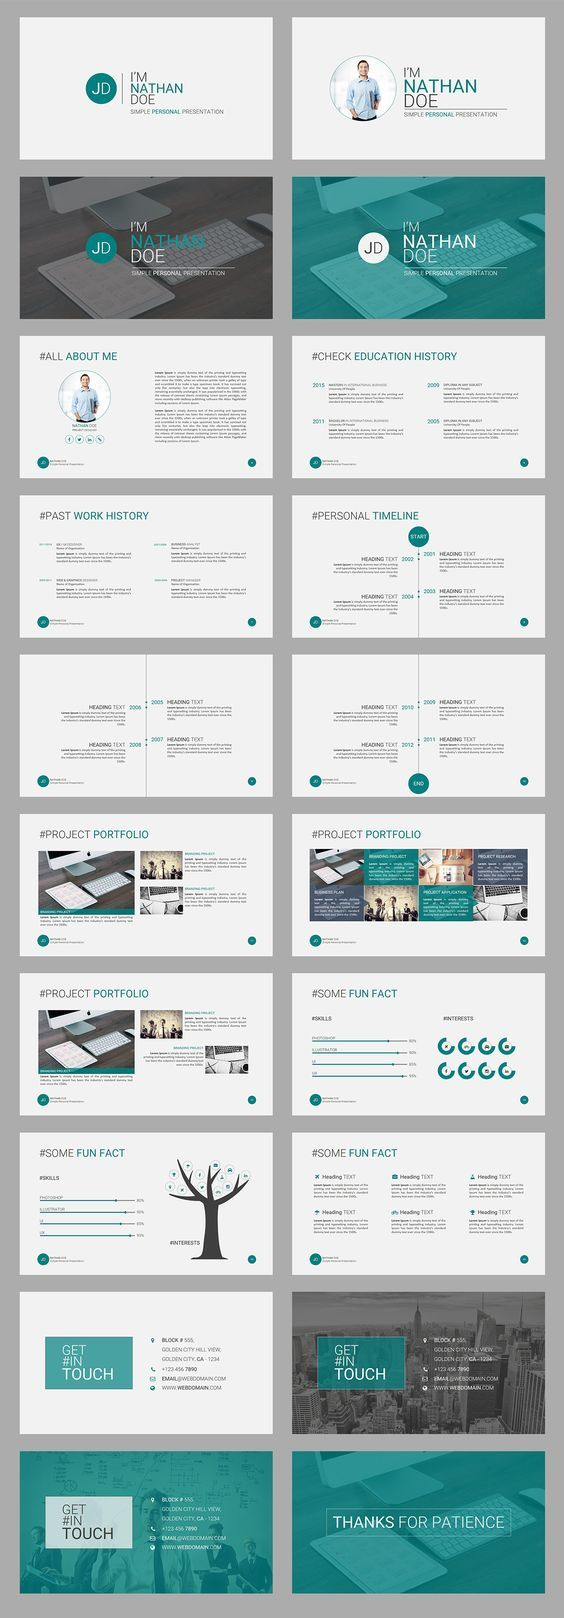 839 best templates images on Pinterest   Creative powerpoint ...